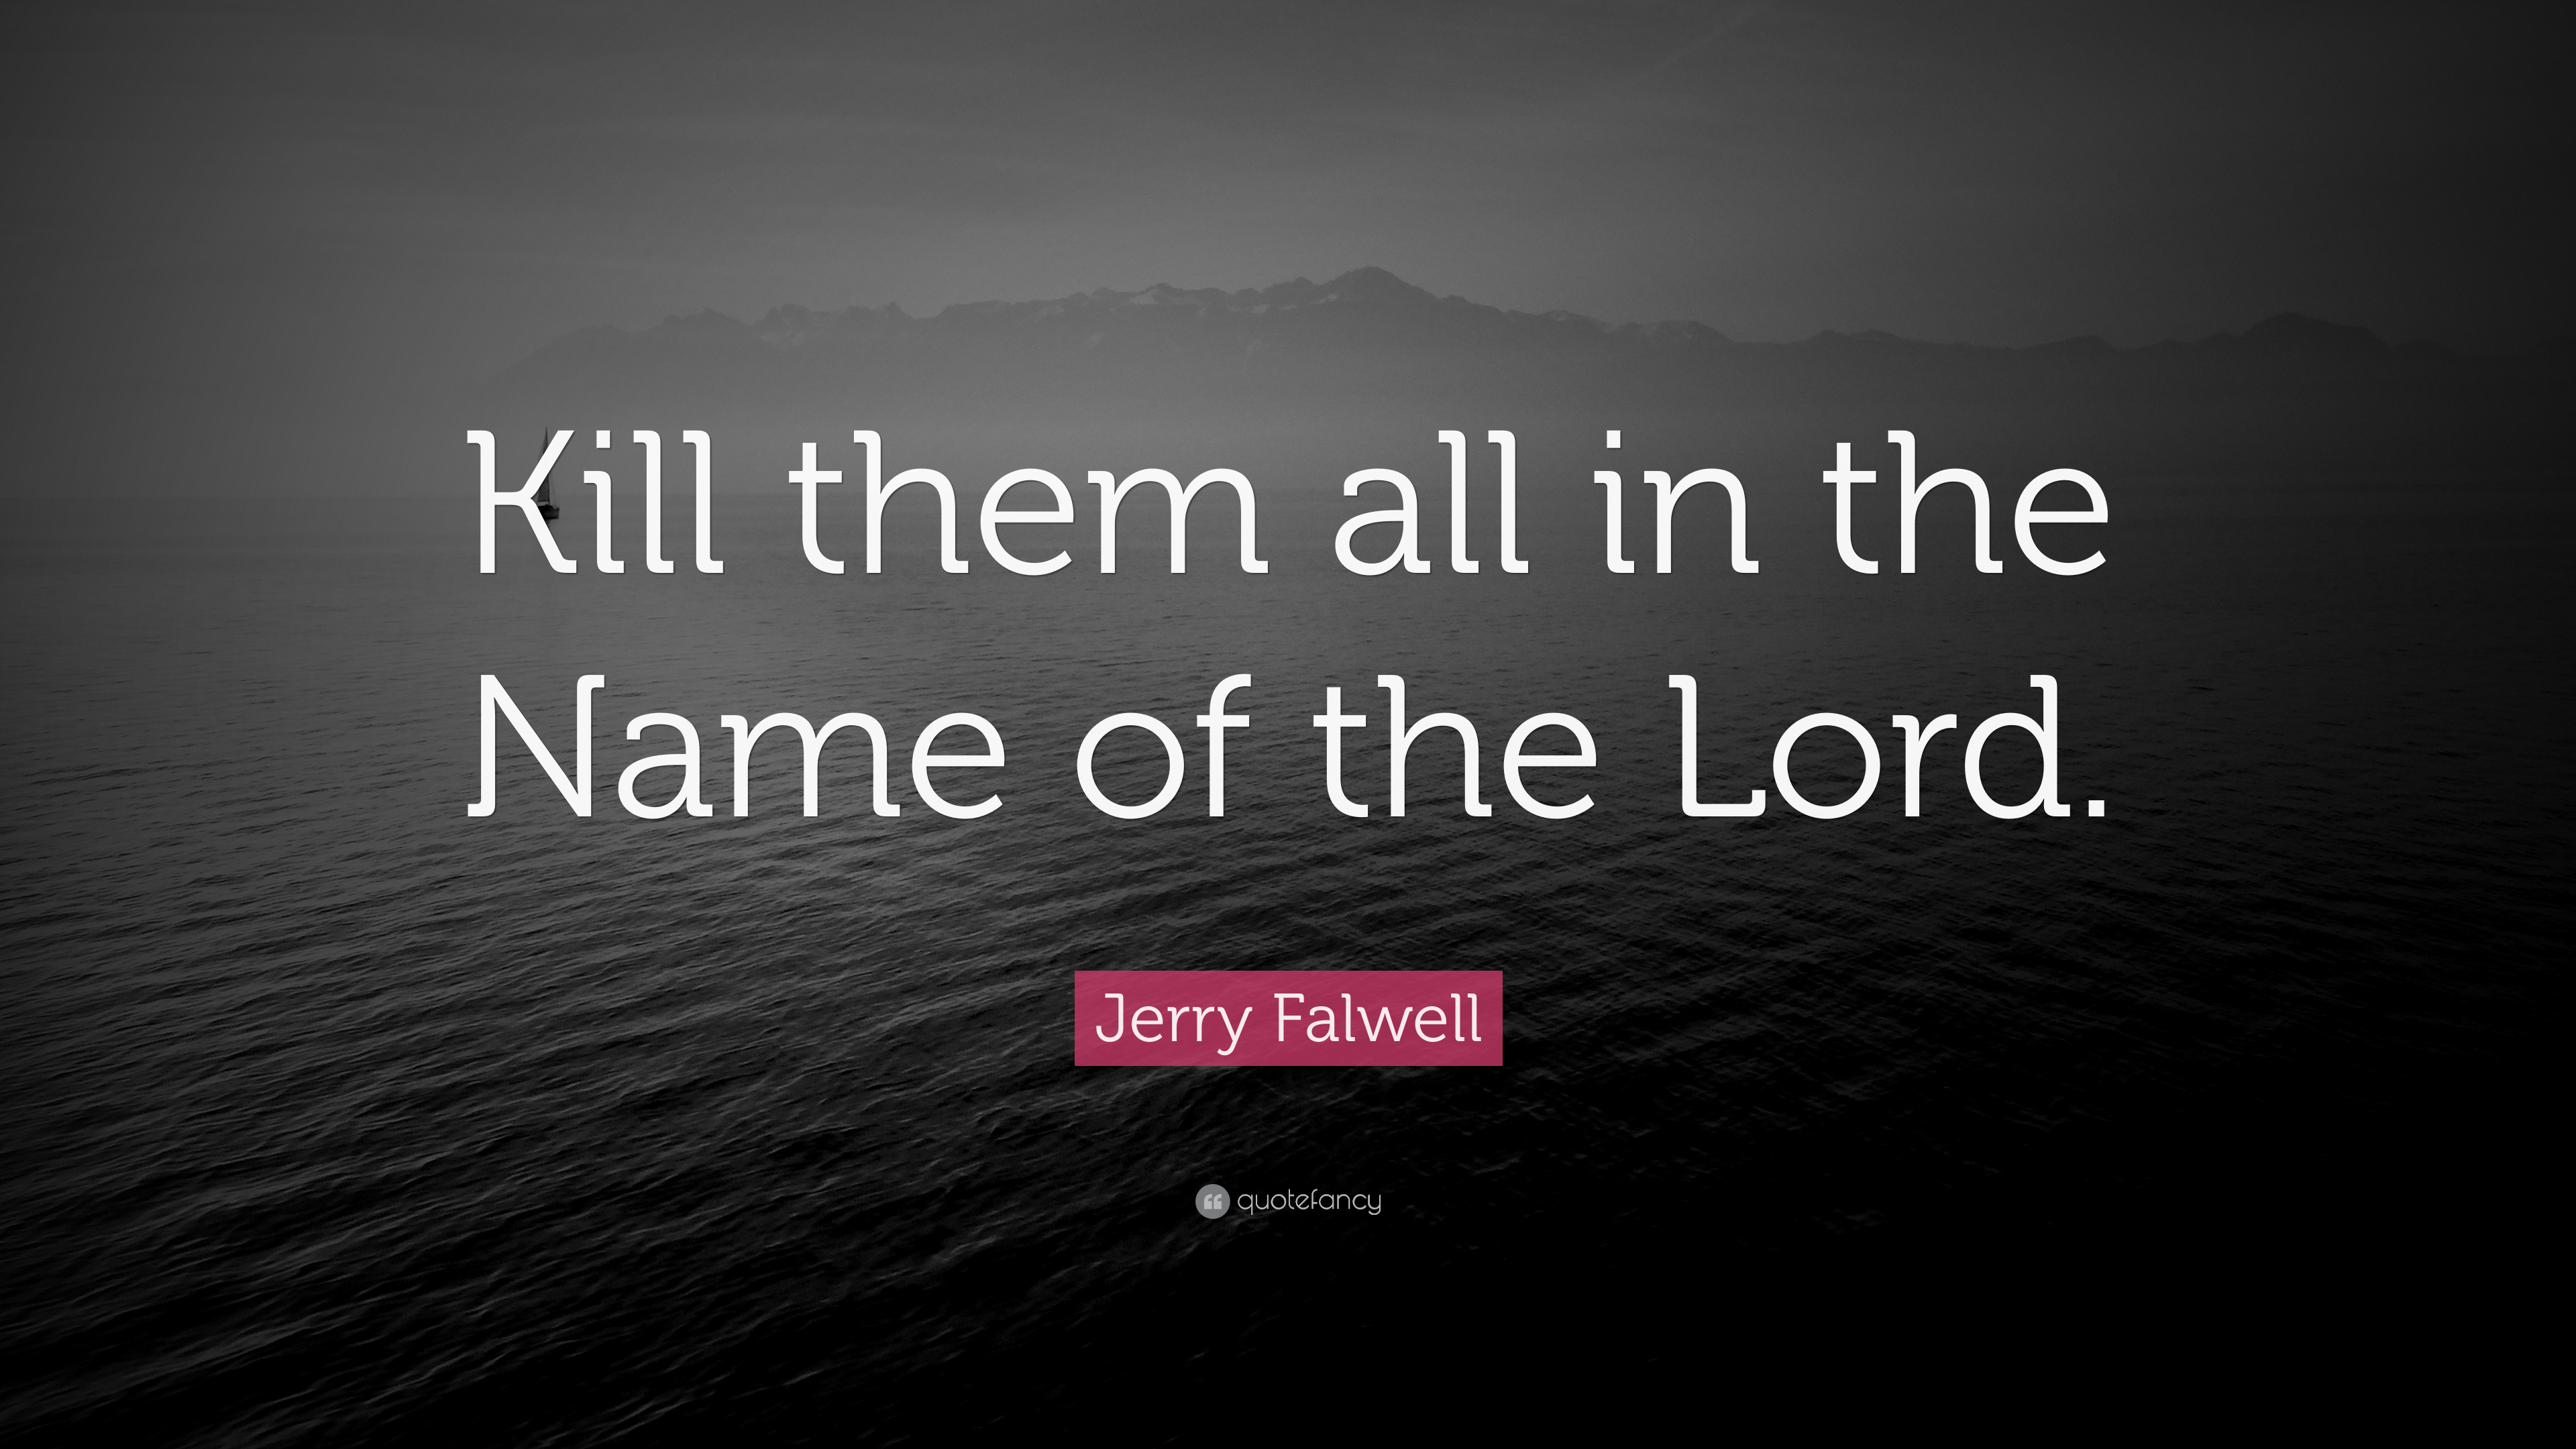 Cool Wallpaper Lord Name - 2567289-Jerry-Falwell-Quote-Kill-them-all-in-the-Name-of-the-Lord  Gallery_194999.jpg